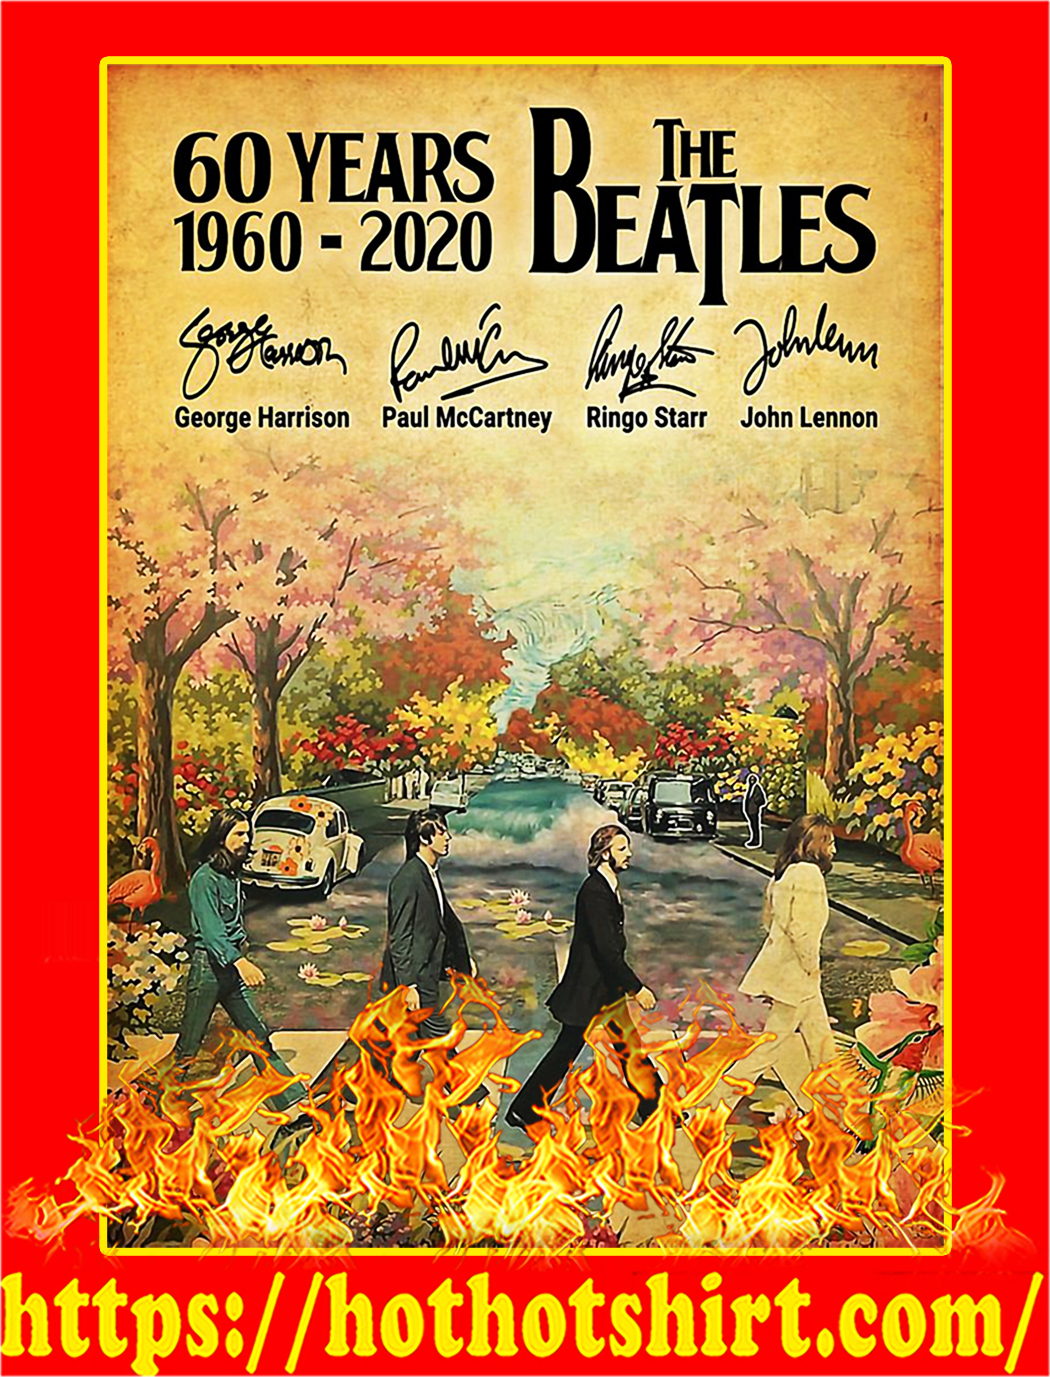 60 Years The Beatles 1960 2020 Signature Poster - A2